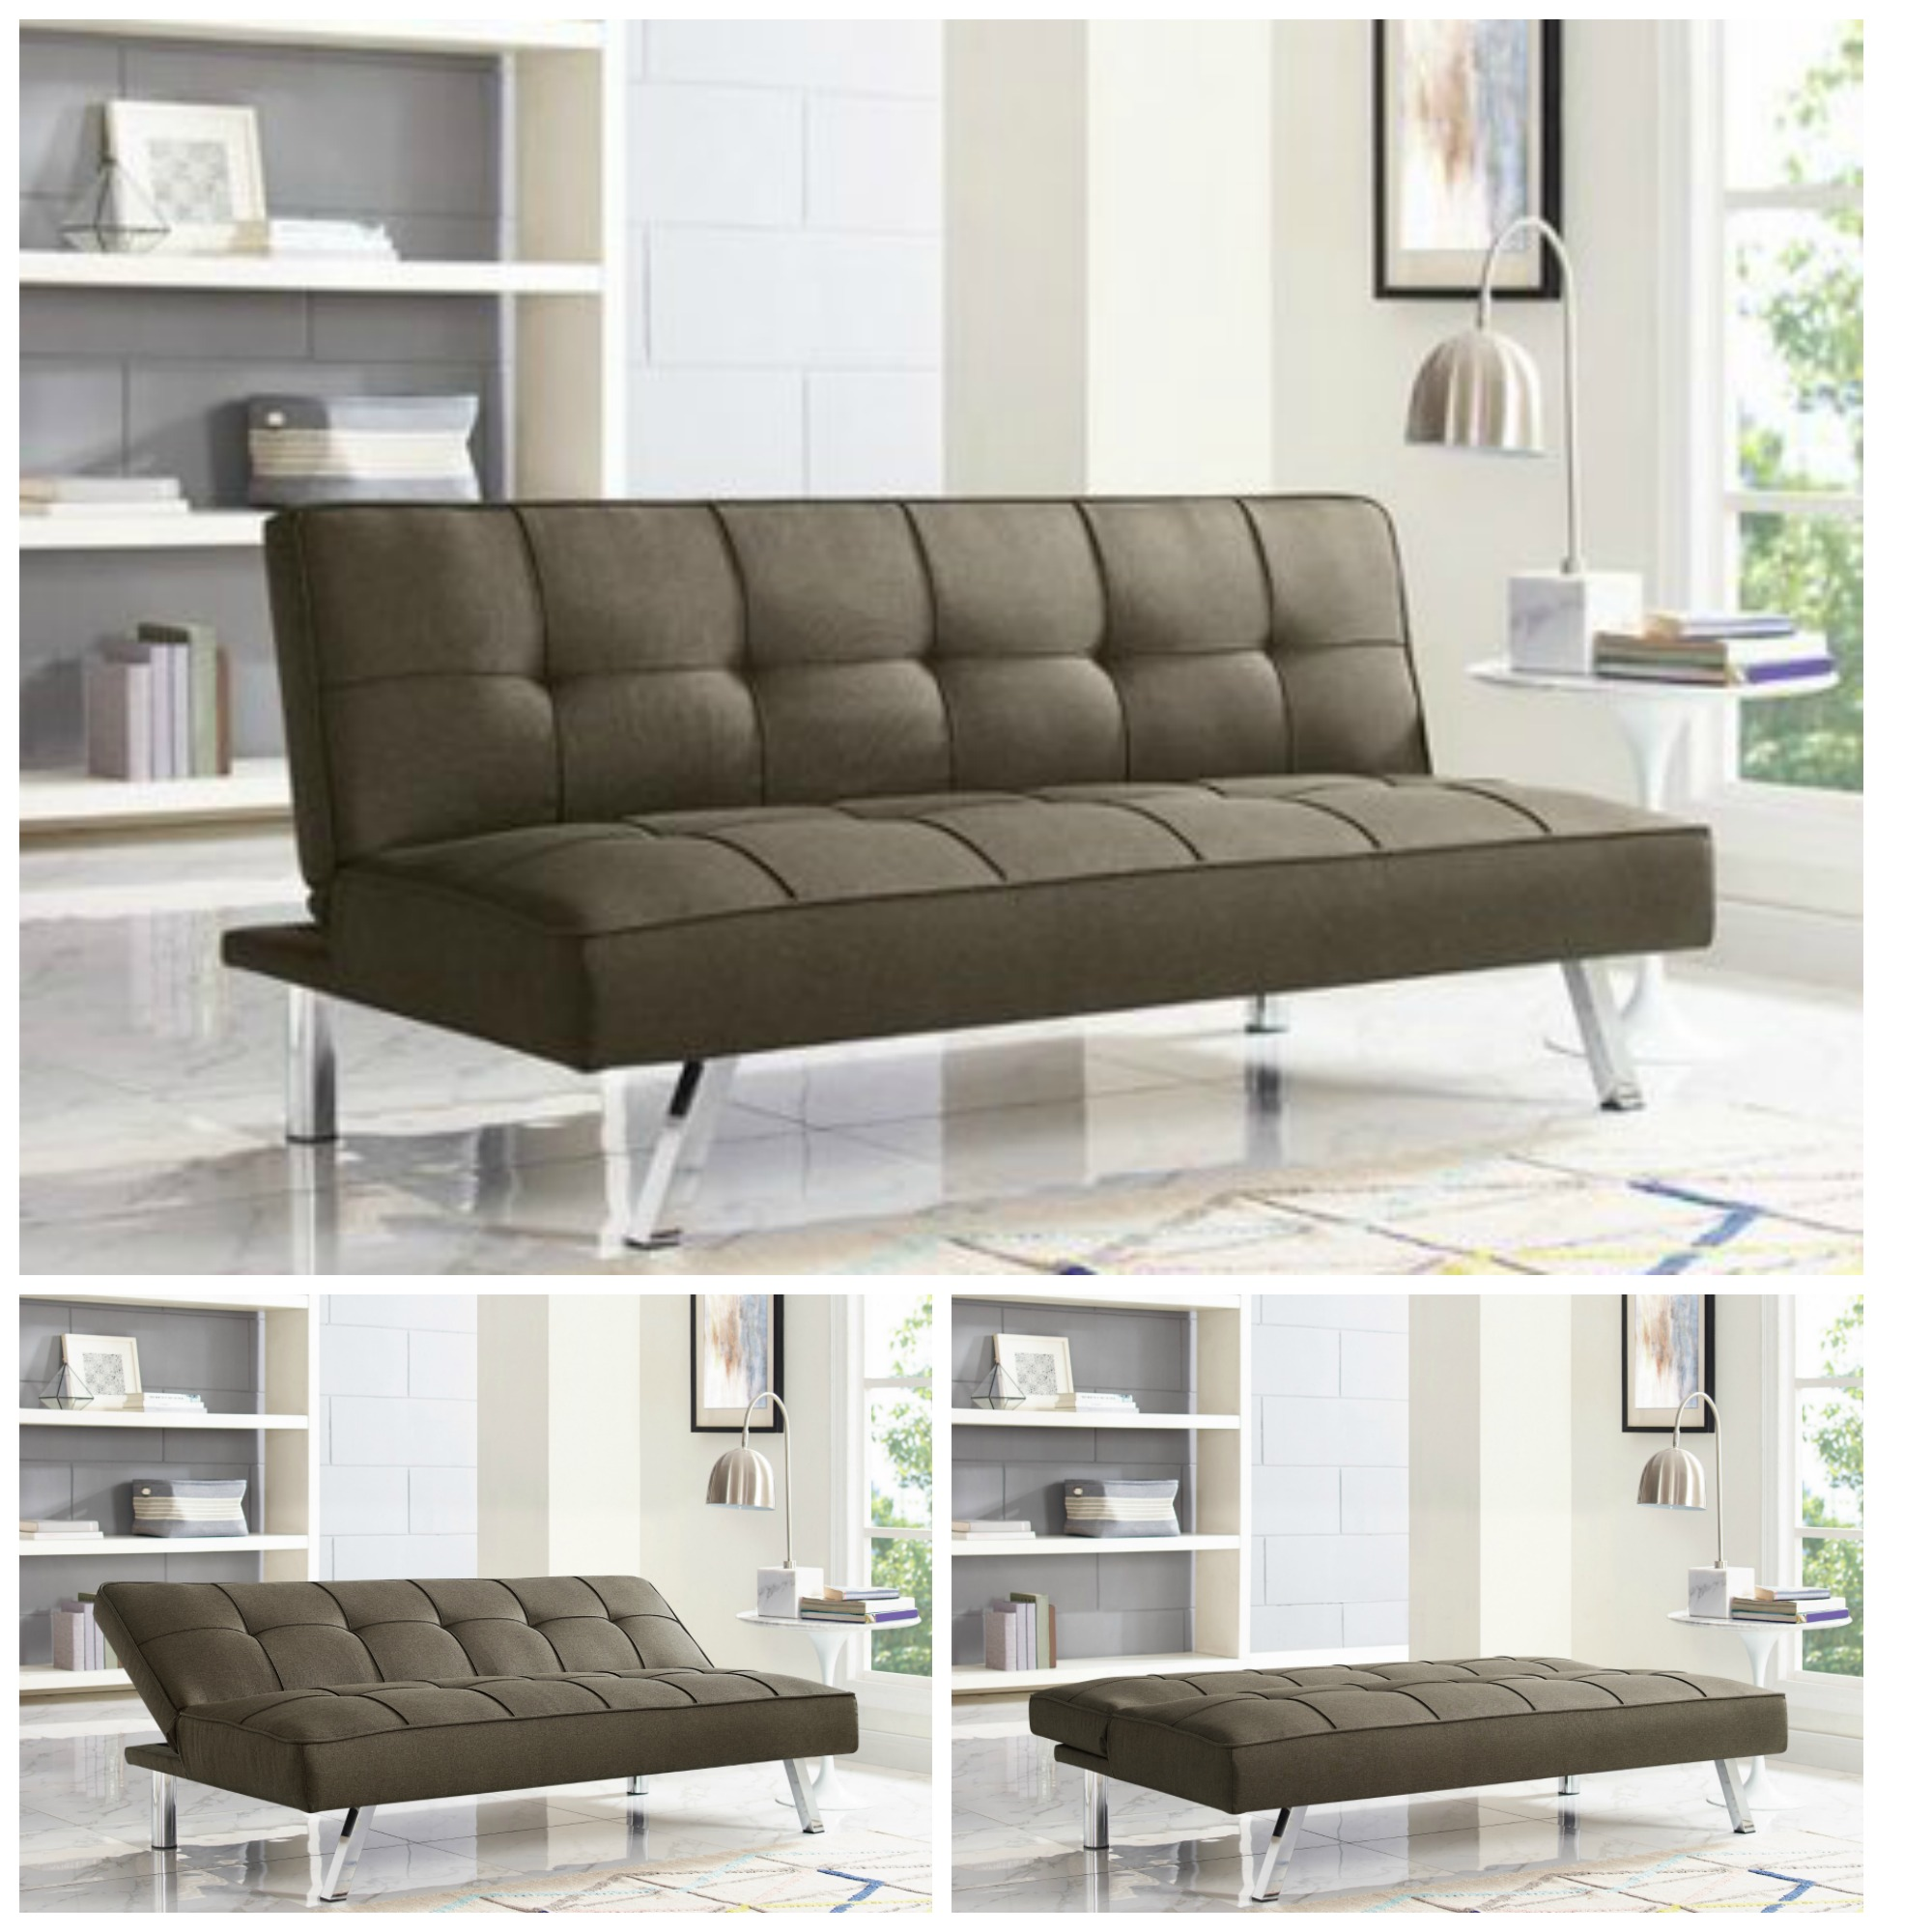 Details About Sleeper Sofa Bed Brown Convertible Couch Modern Living Room Futon Loveseat Chair